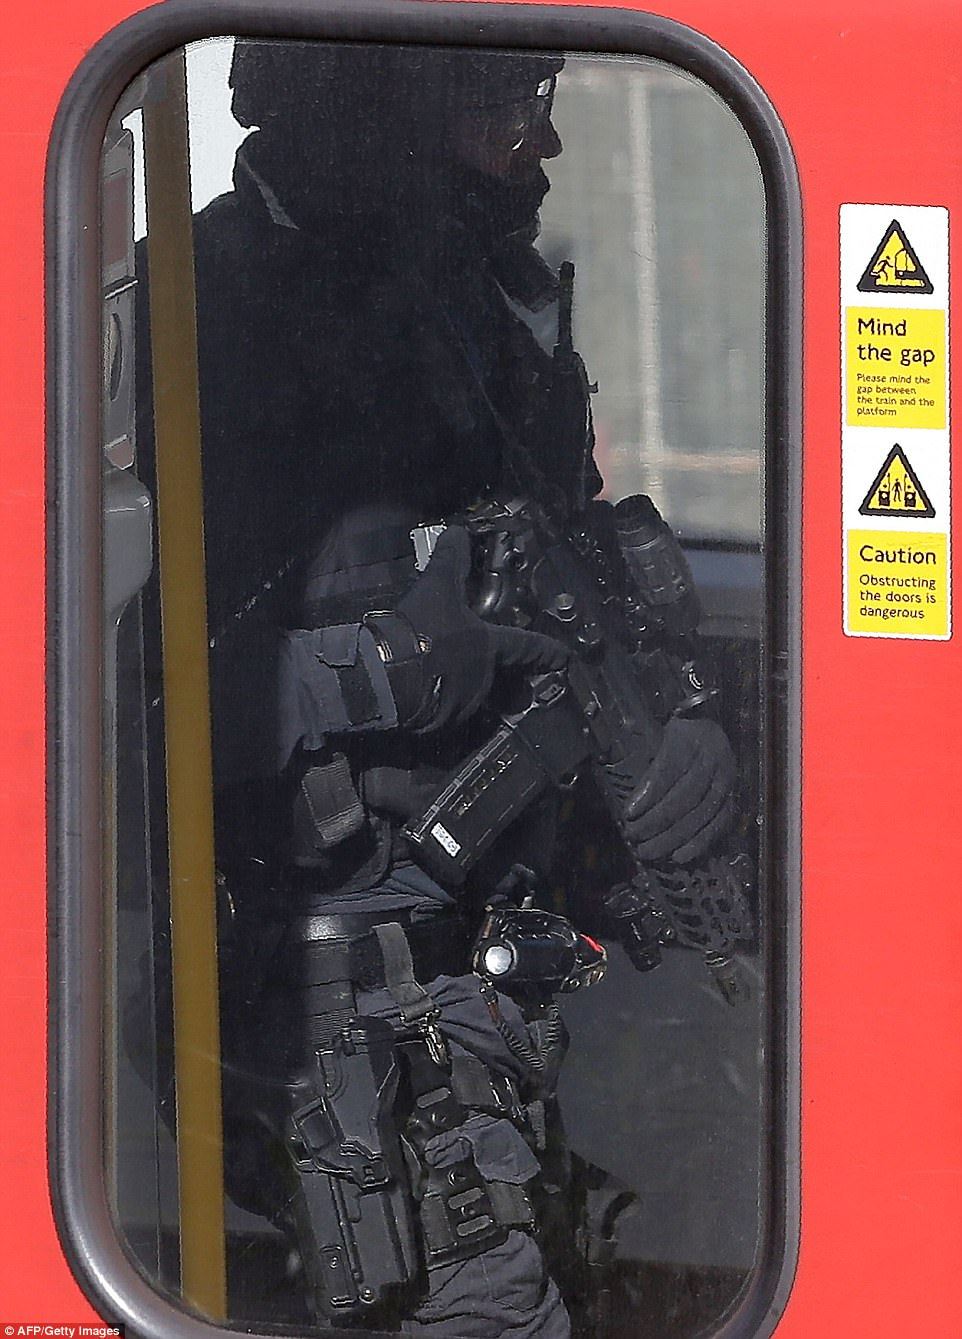 A heavily armed officer wanders through the damaged train's carriages looking for more devices